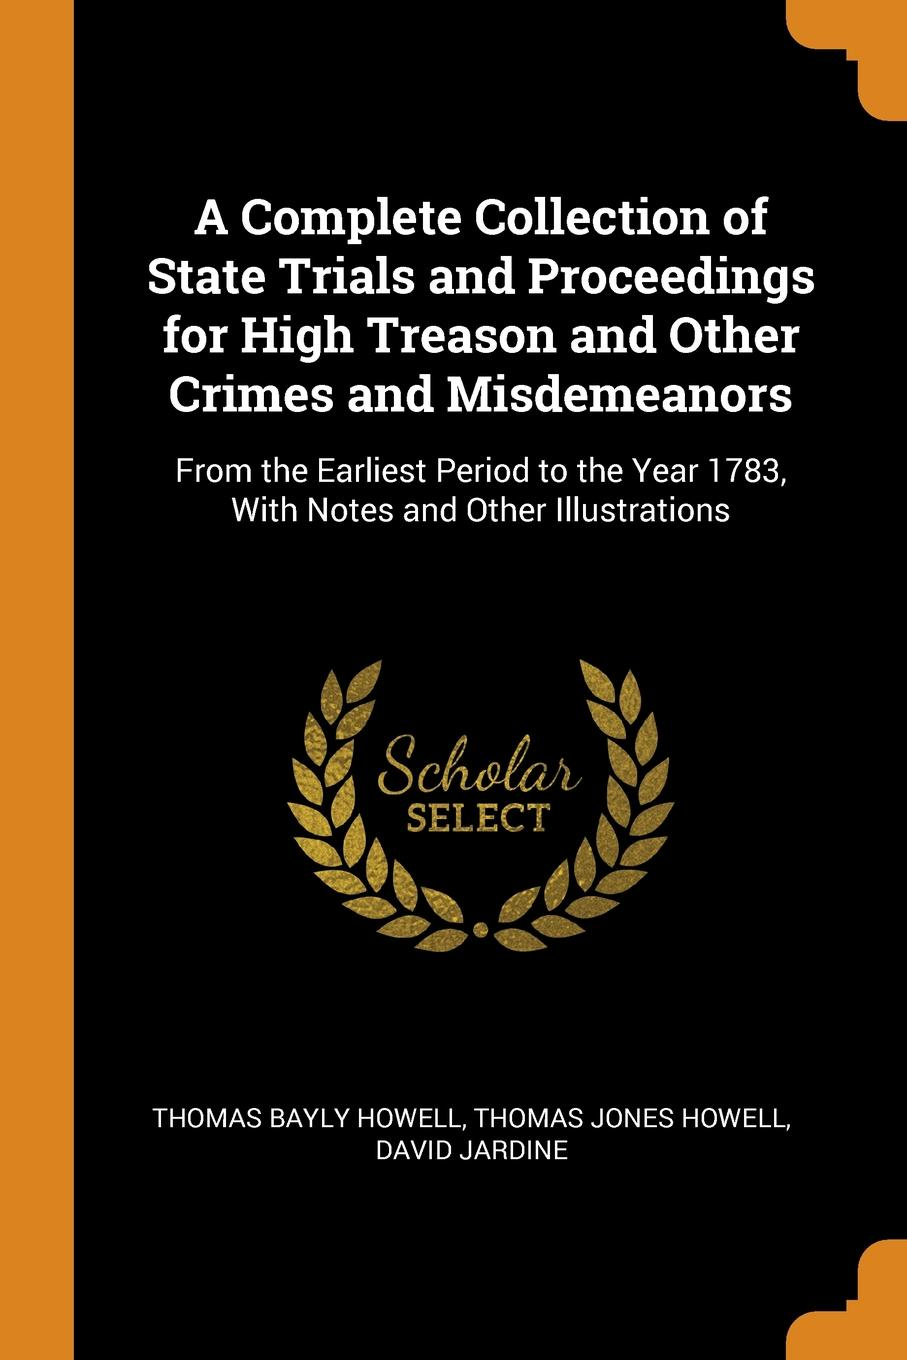 A Complete Collection of State Trials and Proceedings for High Treason and Other Crimes and Misdemeanors. From the Earliest Period to the Year 1783, With Notes and Other Illustrations. Thomas Bayly Howell, Thomas Jones Howell, David Jardine